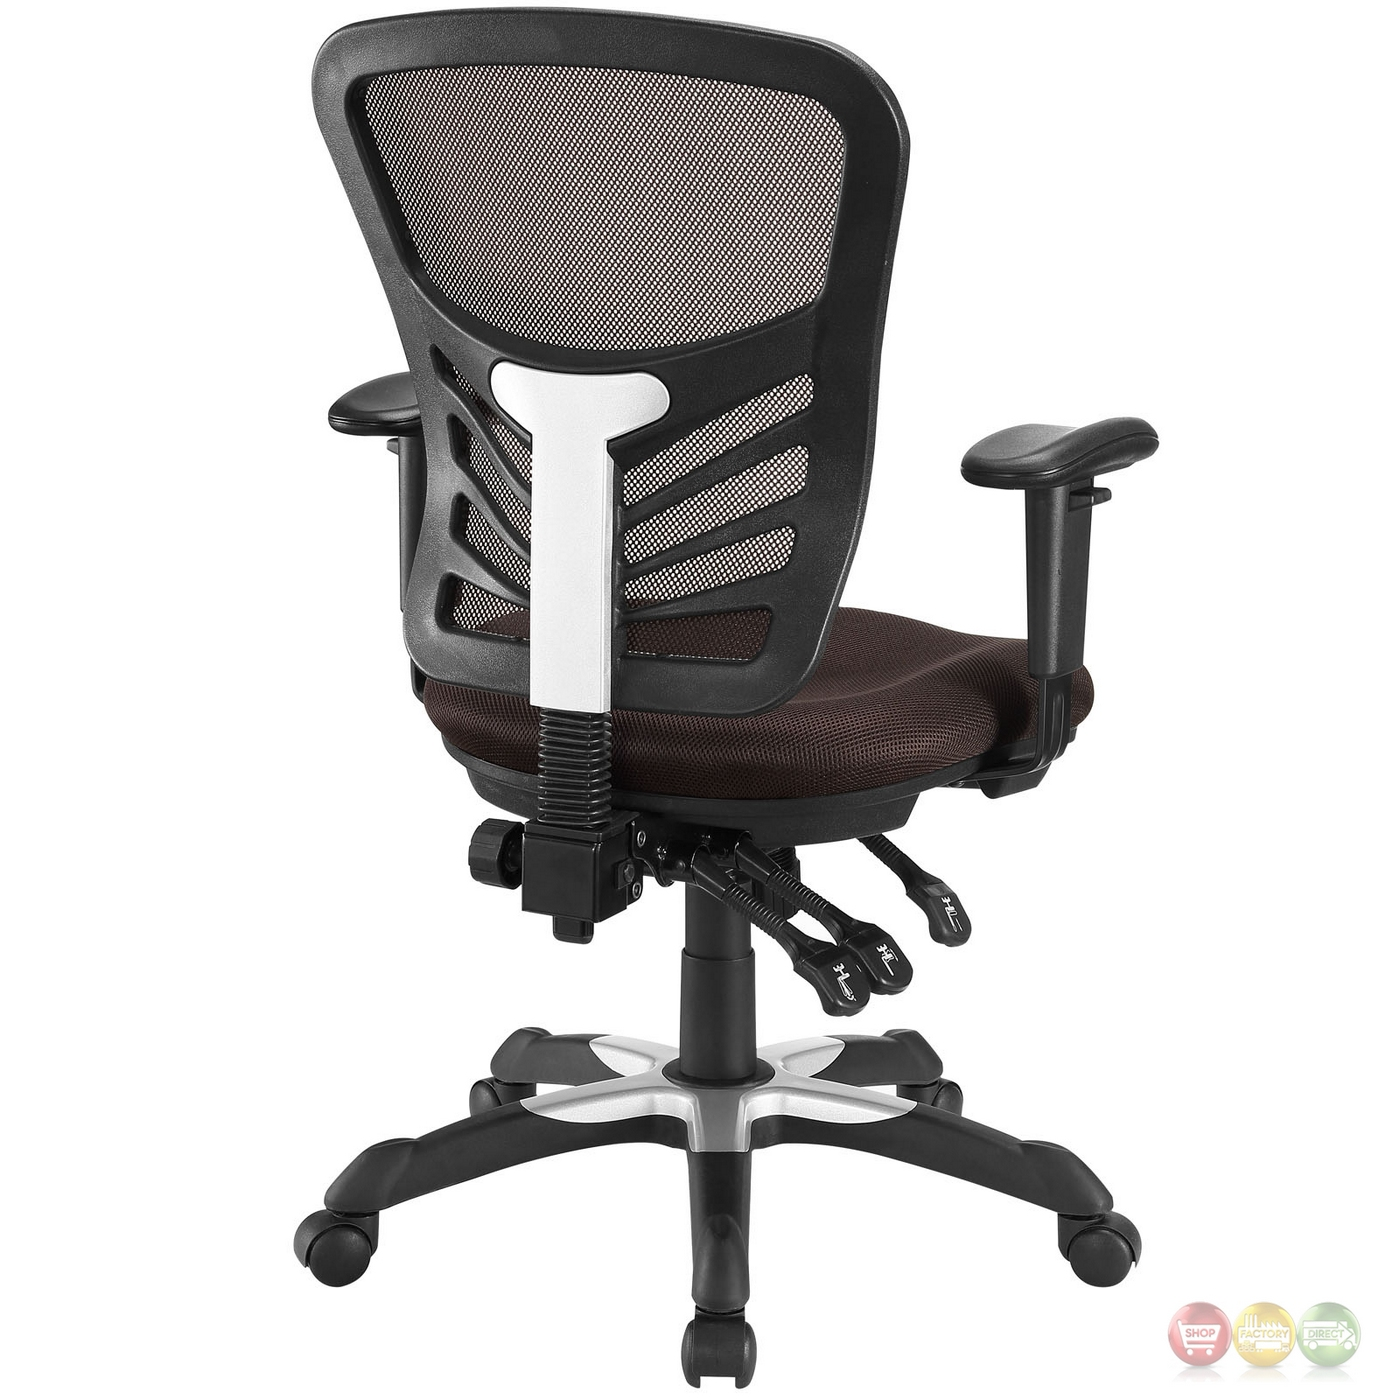 Ergonomic Mesh Chair Articulate Modern Adjustable Ergonomic Mesh Office Chair